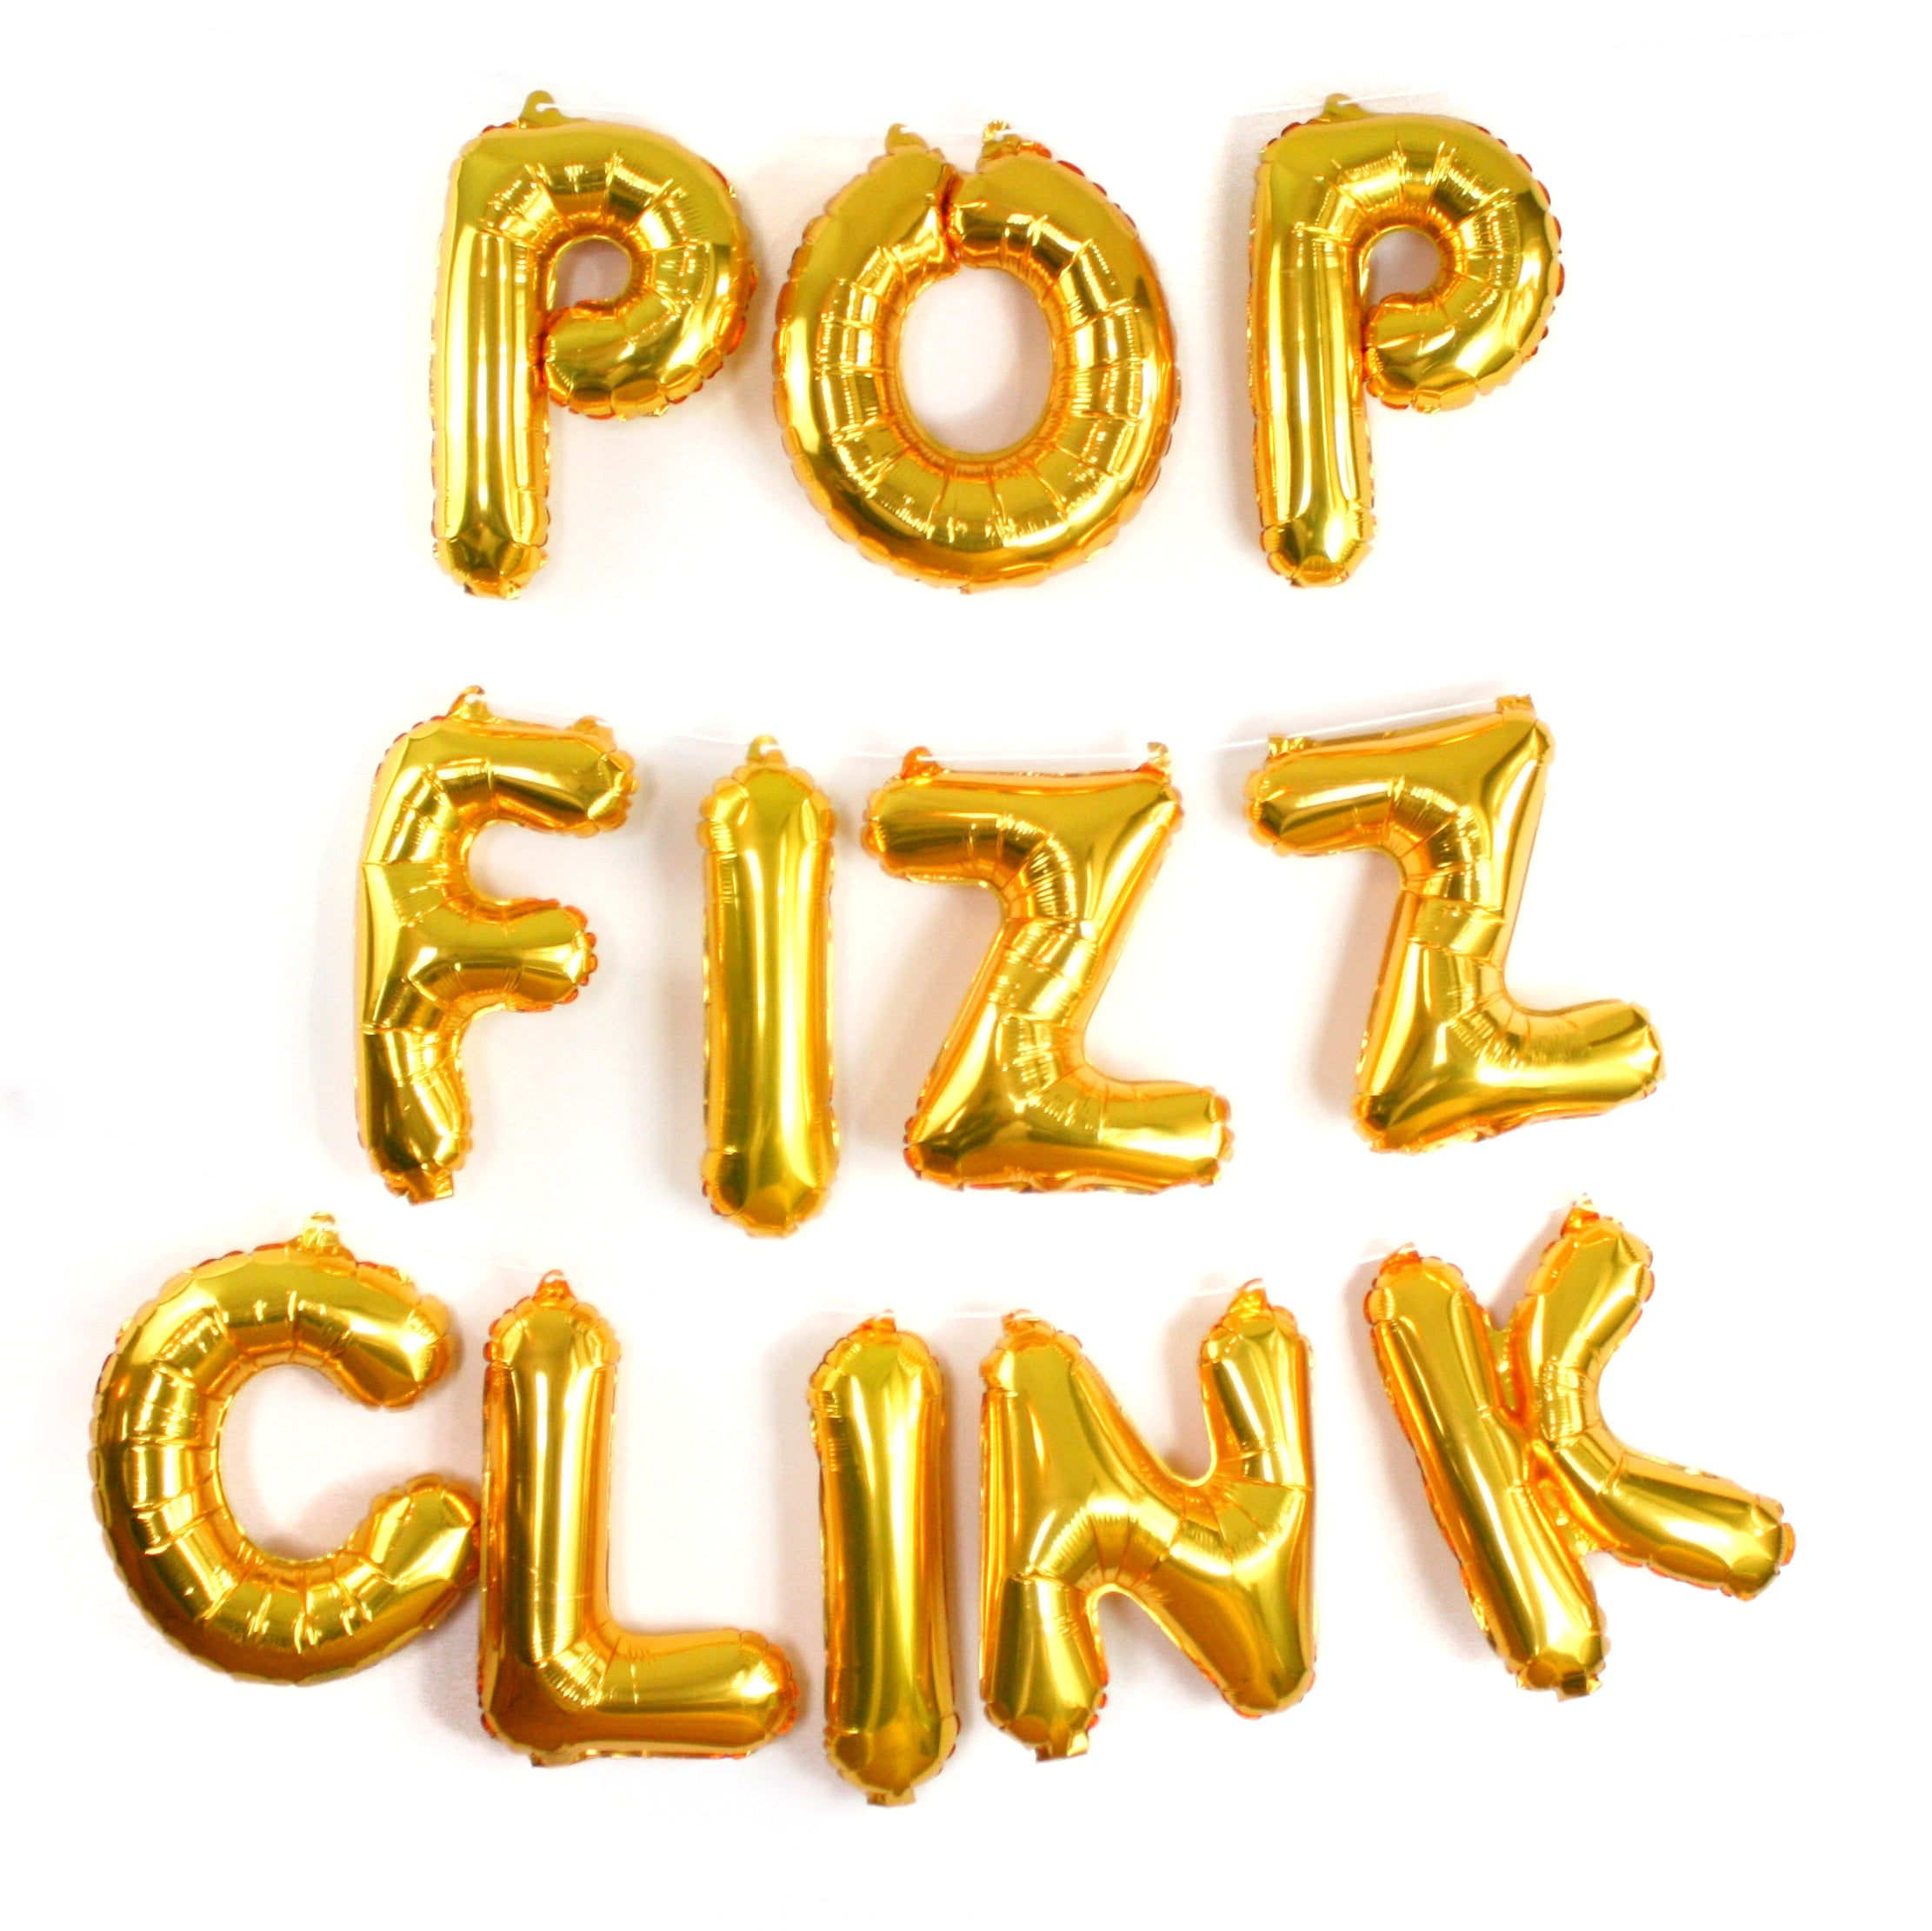 Pop Fizz Clink Balloon Garland Kit